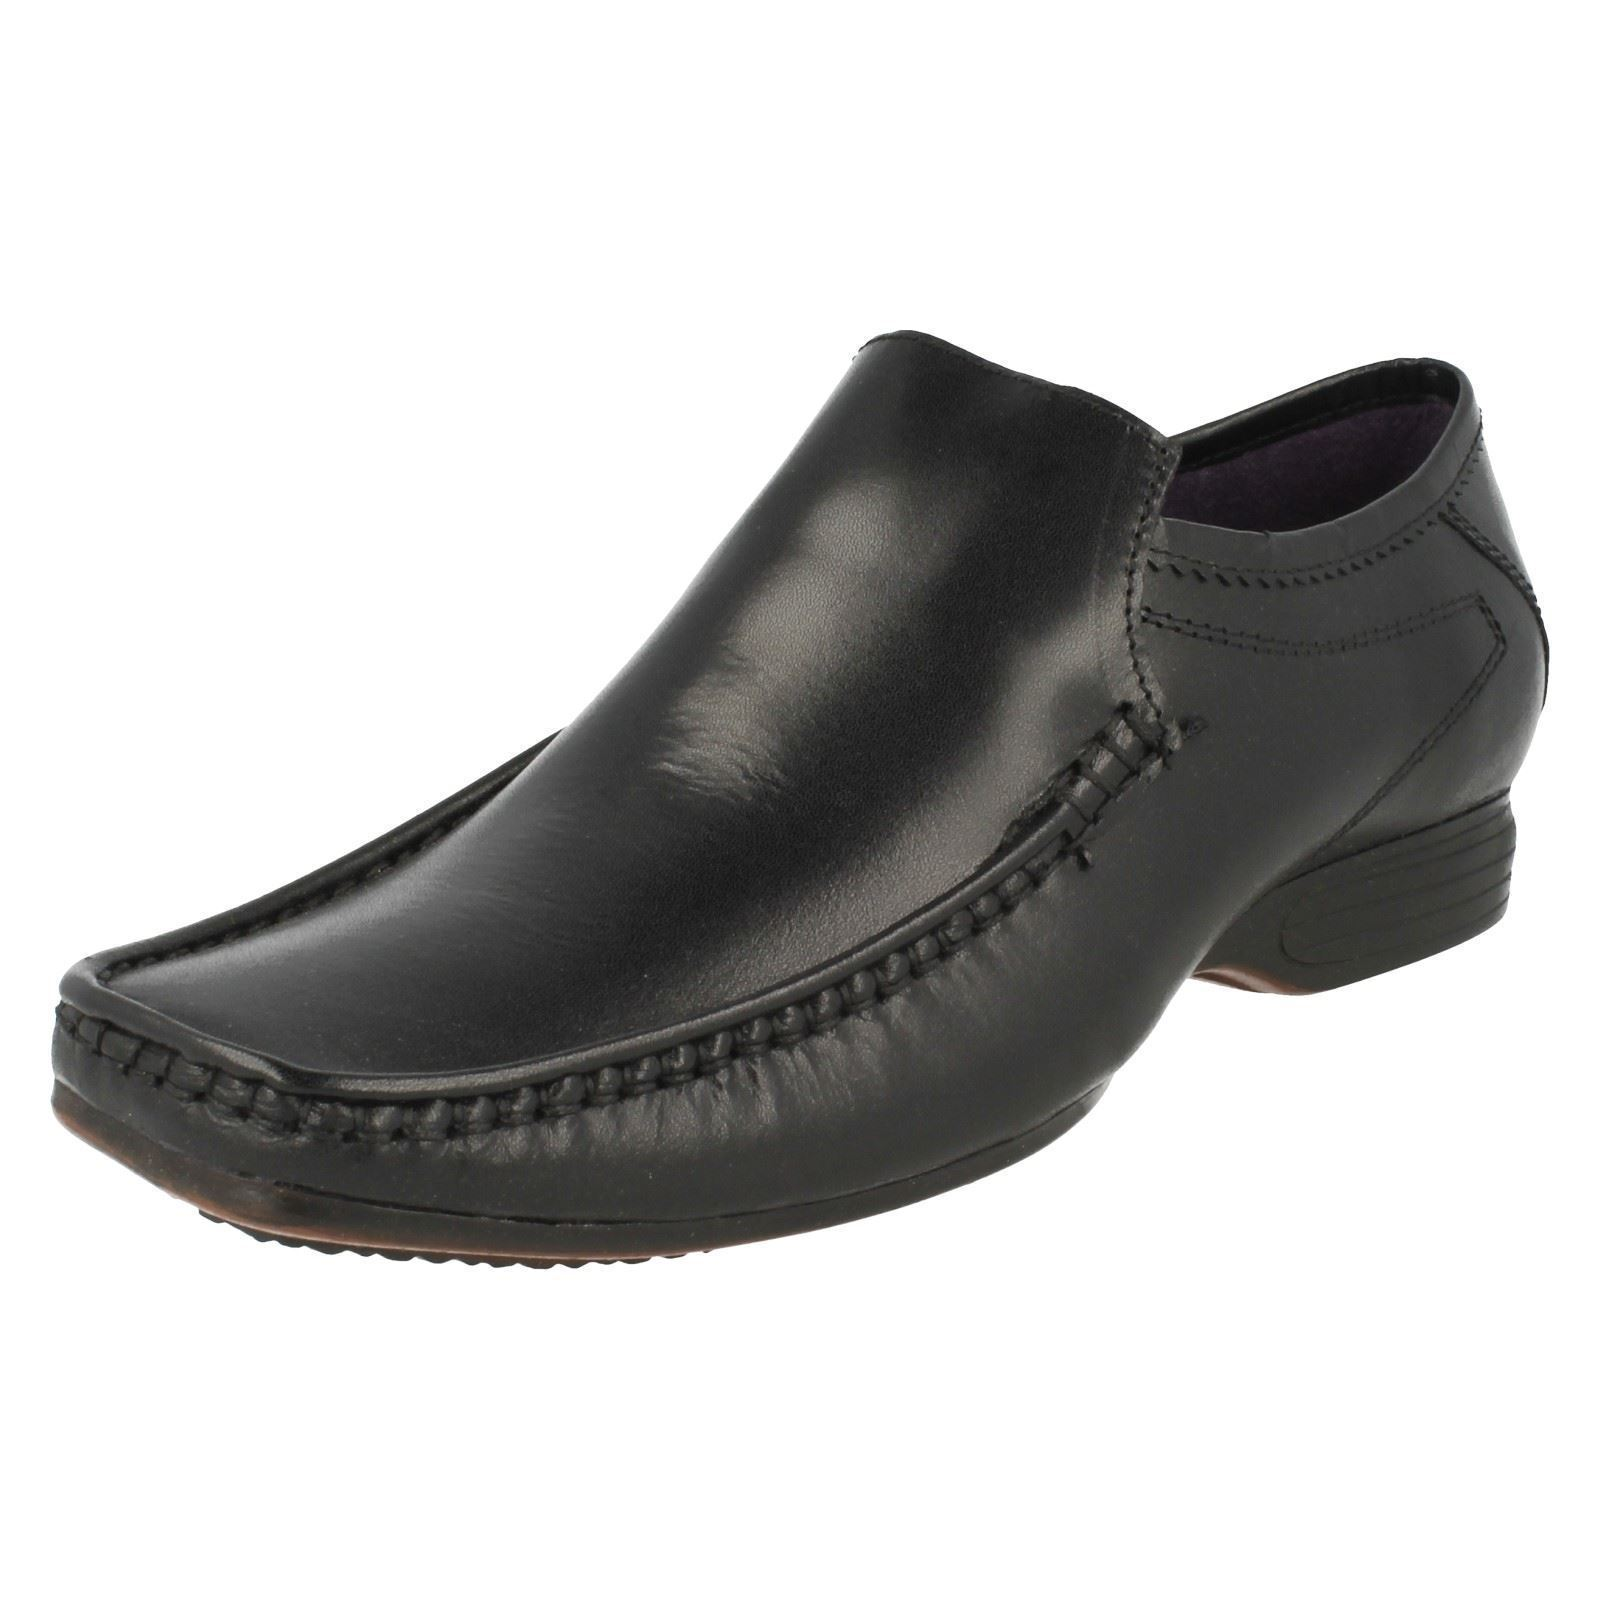 Mens HOPEB Black Leather Slip On shoes By PSL